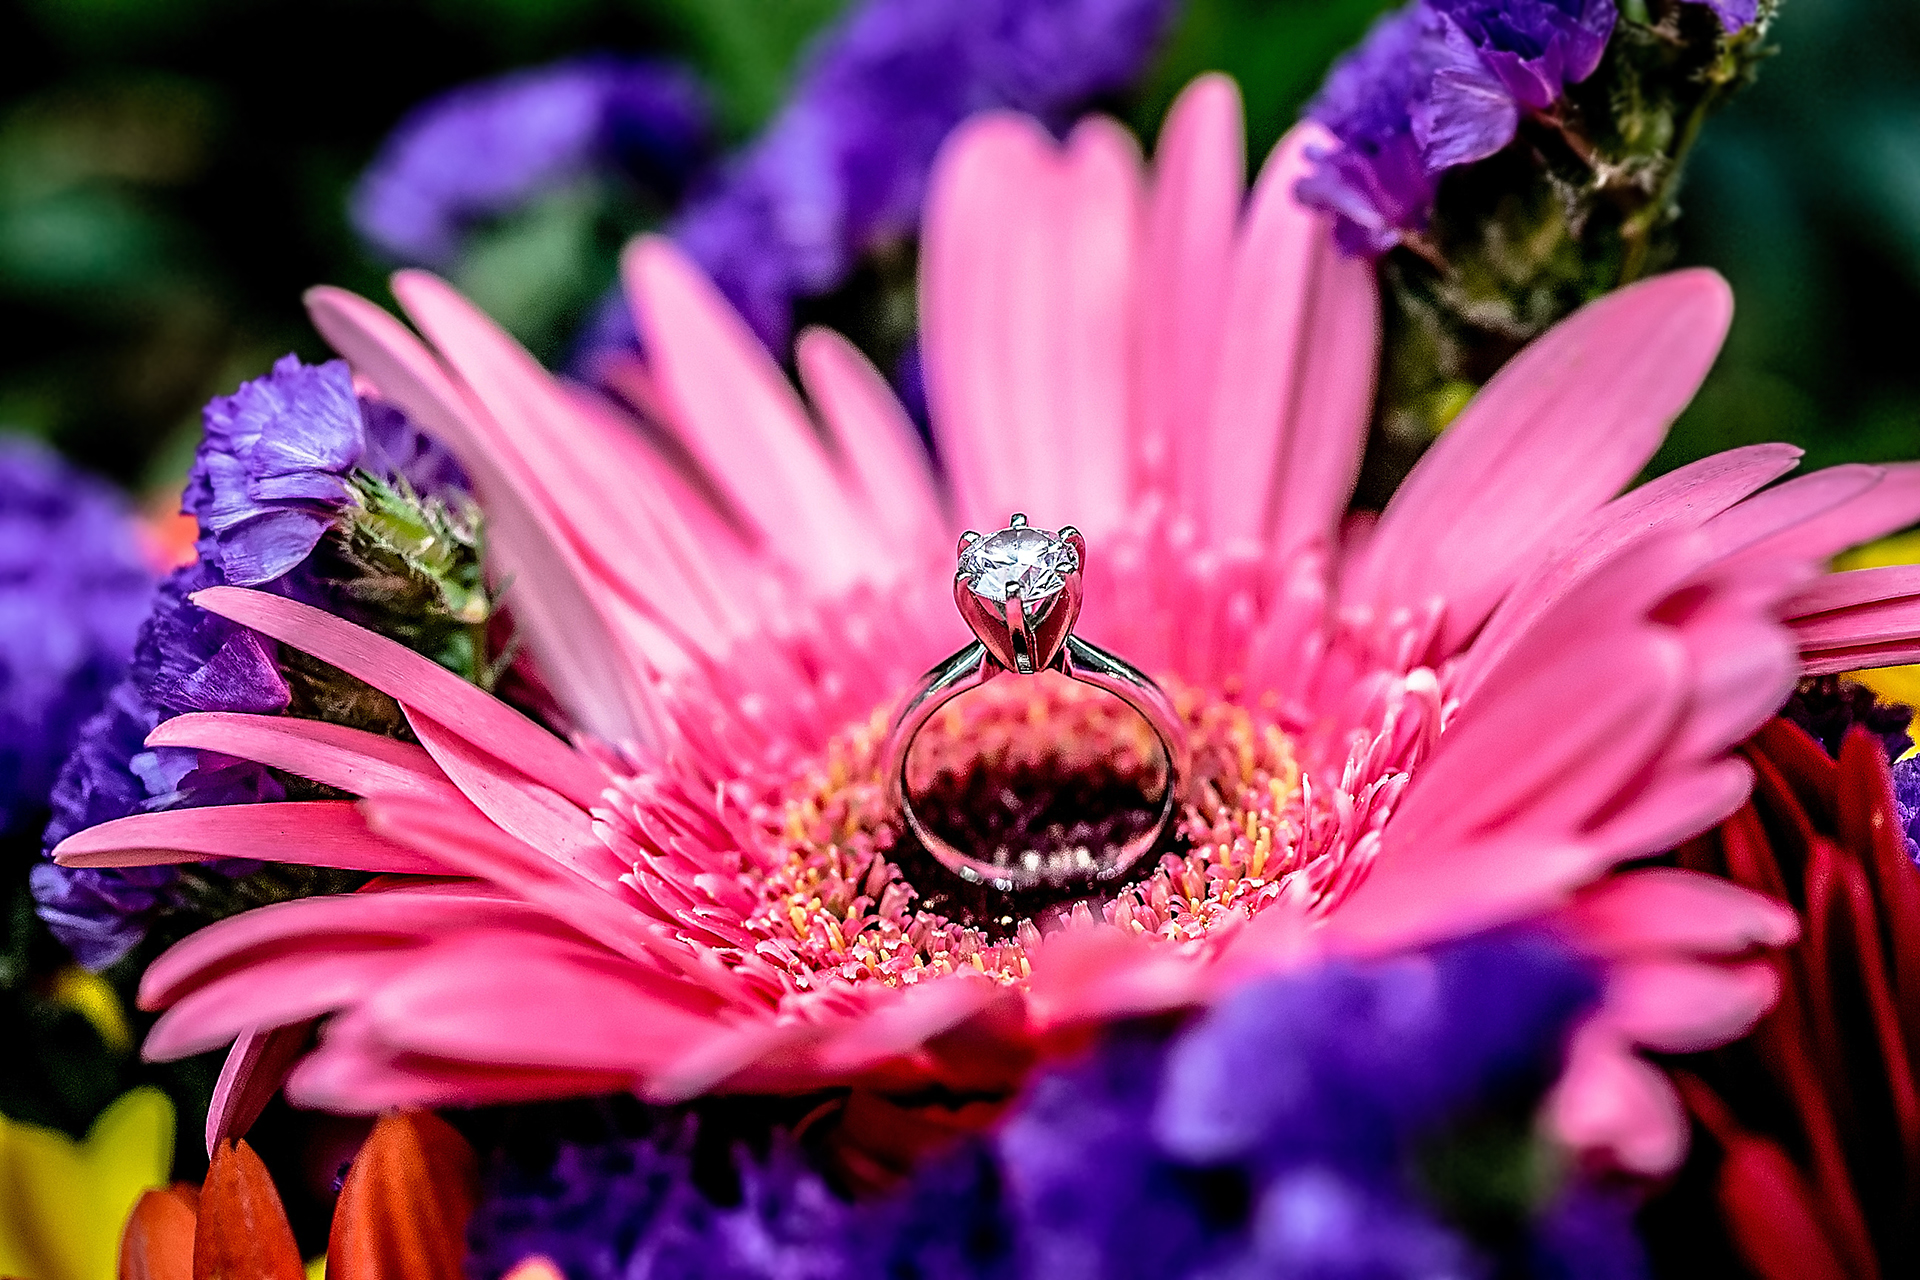 Engagement ring on a pink flower